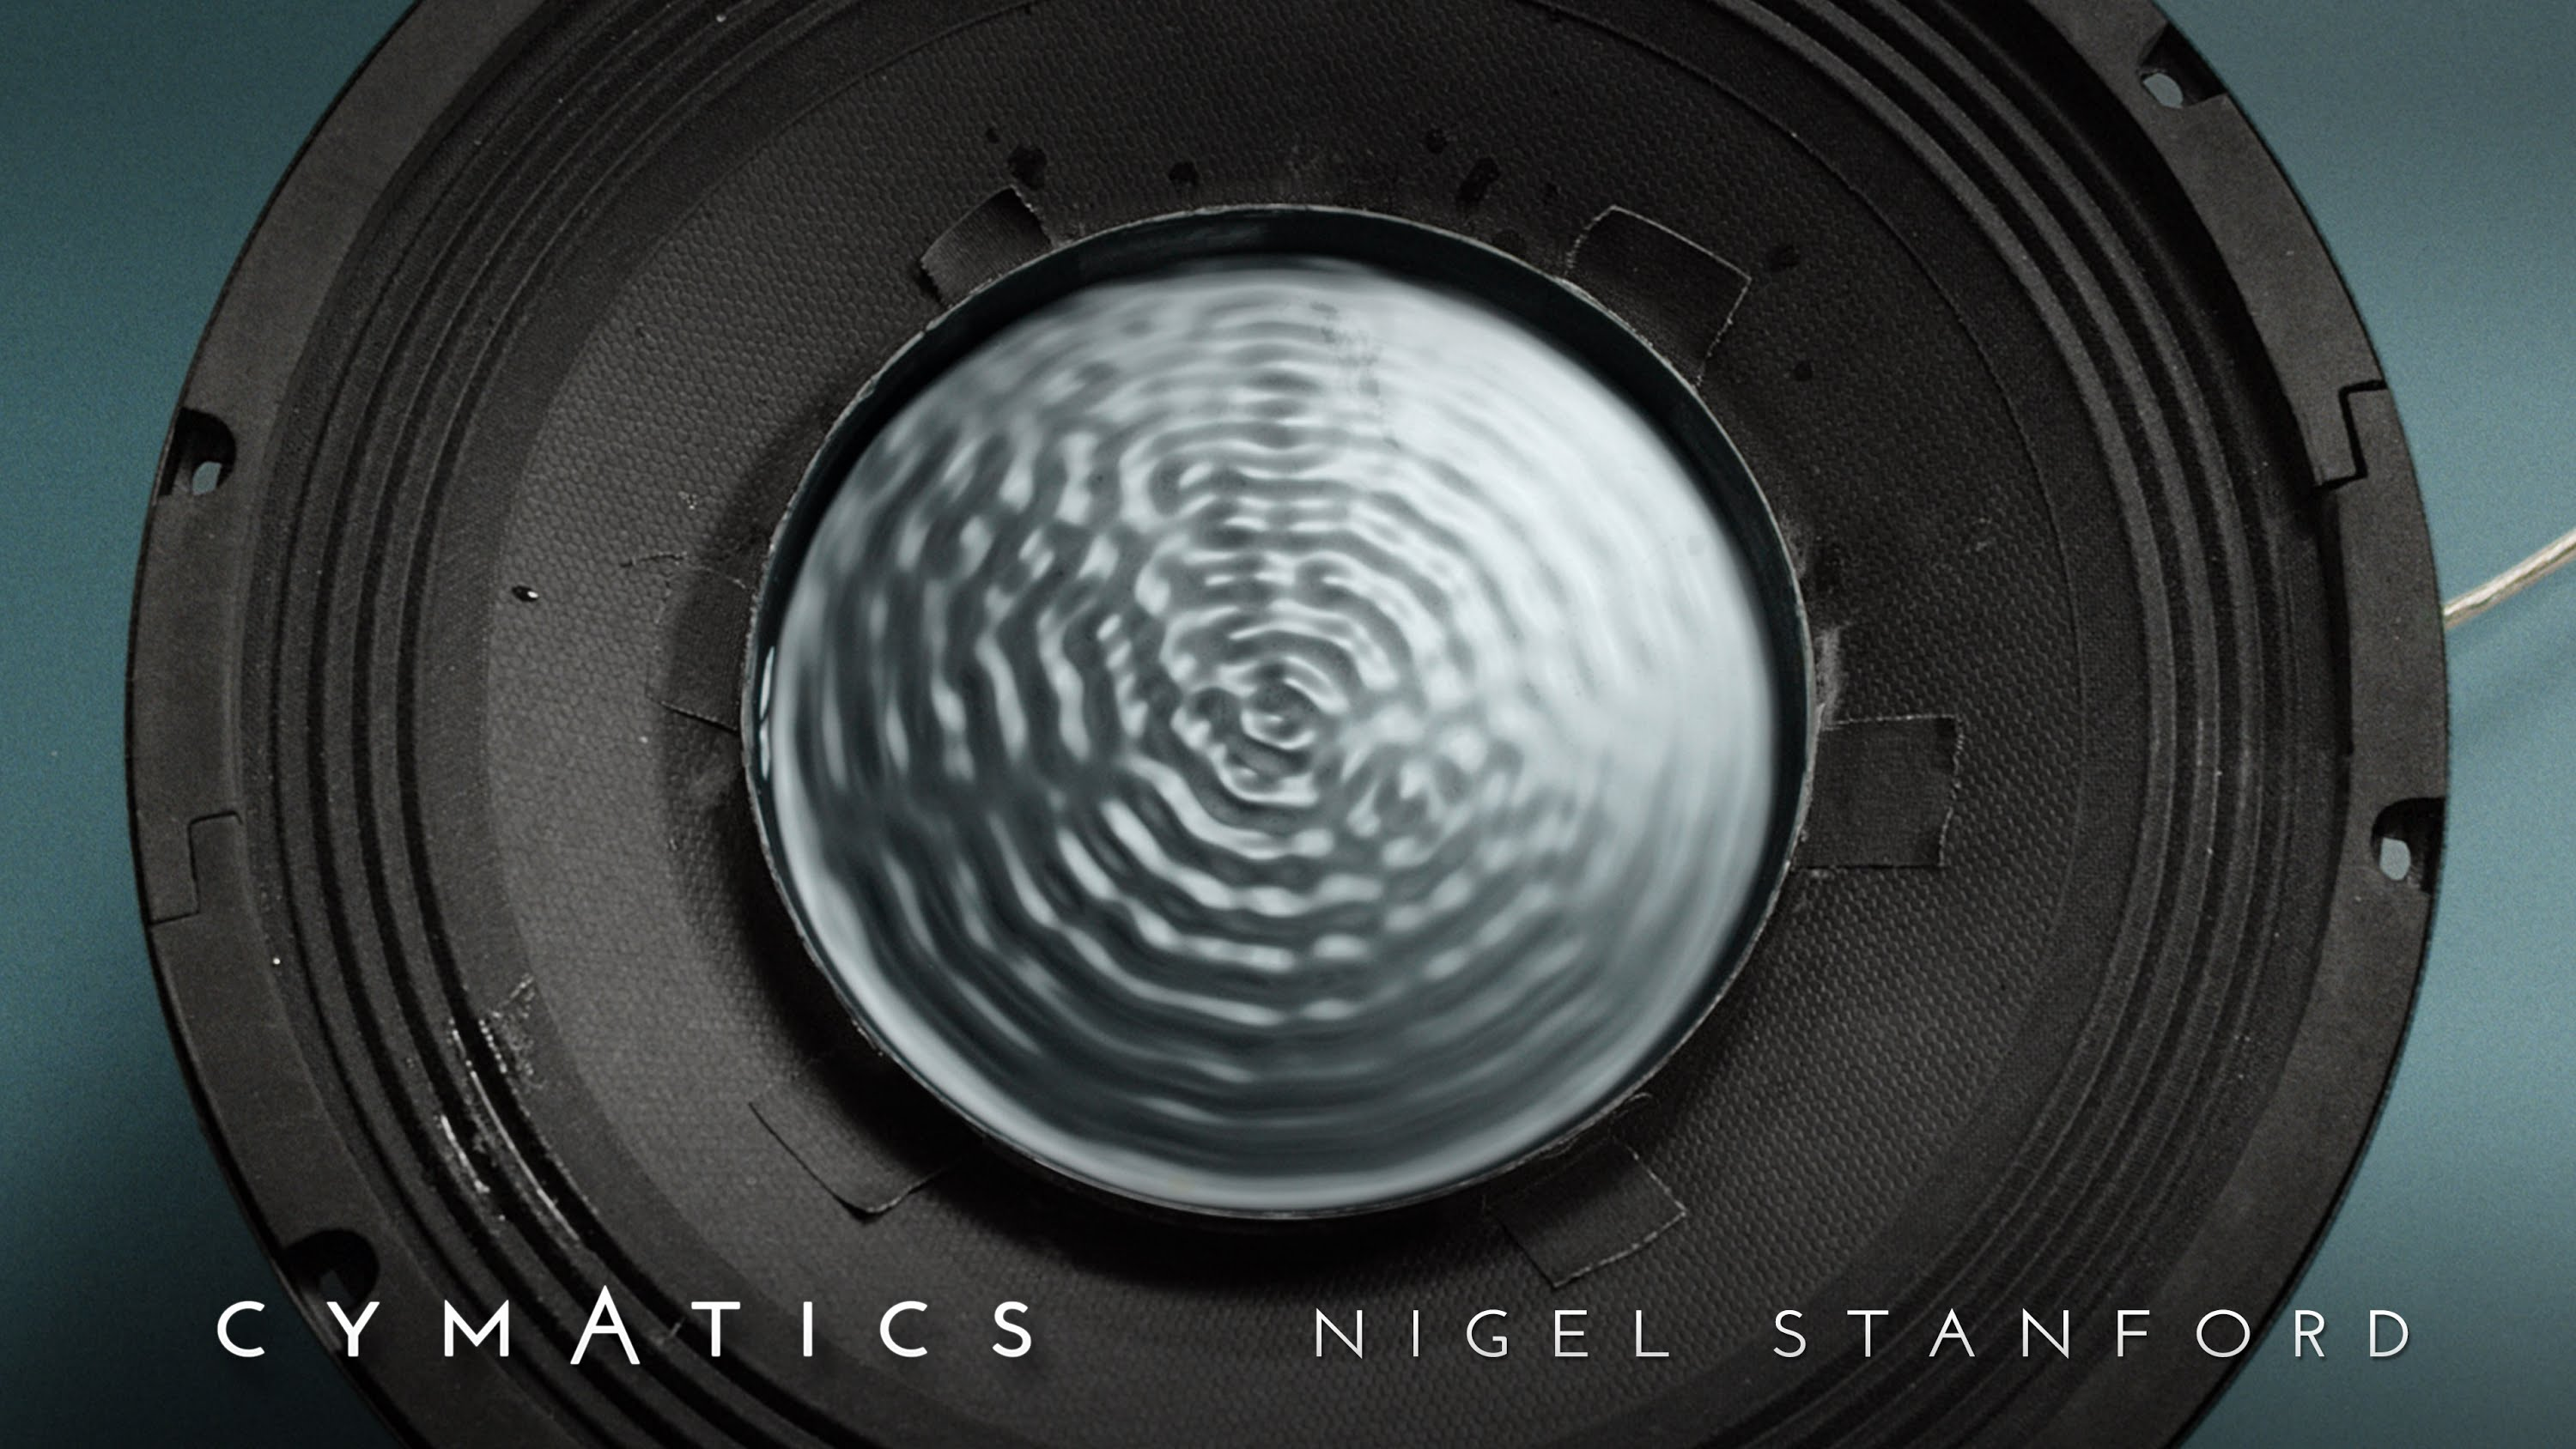 Cymatics, Nigel Stanford, Soundwaves, Sound visualized,